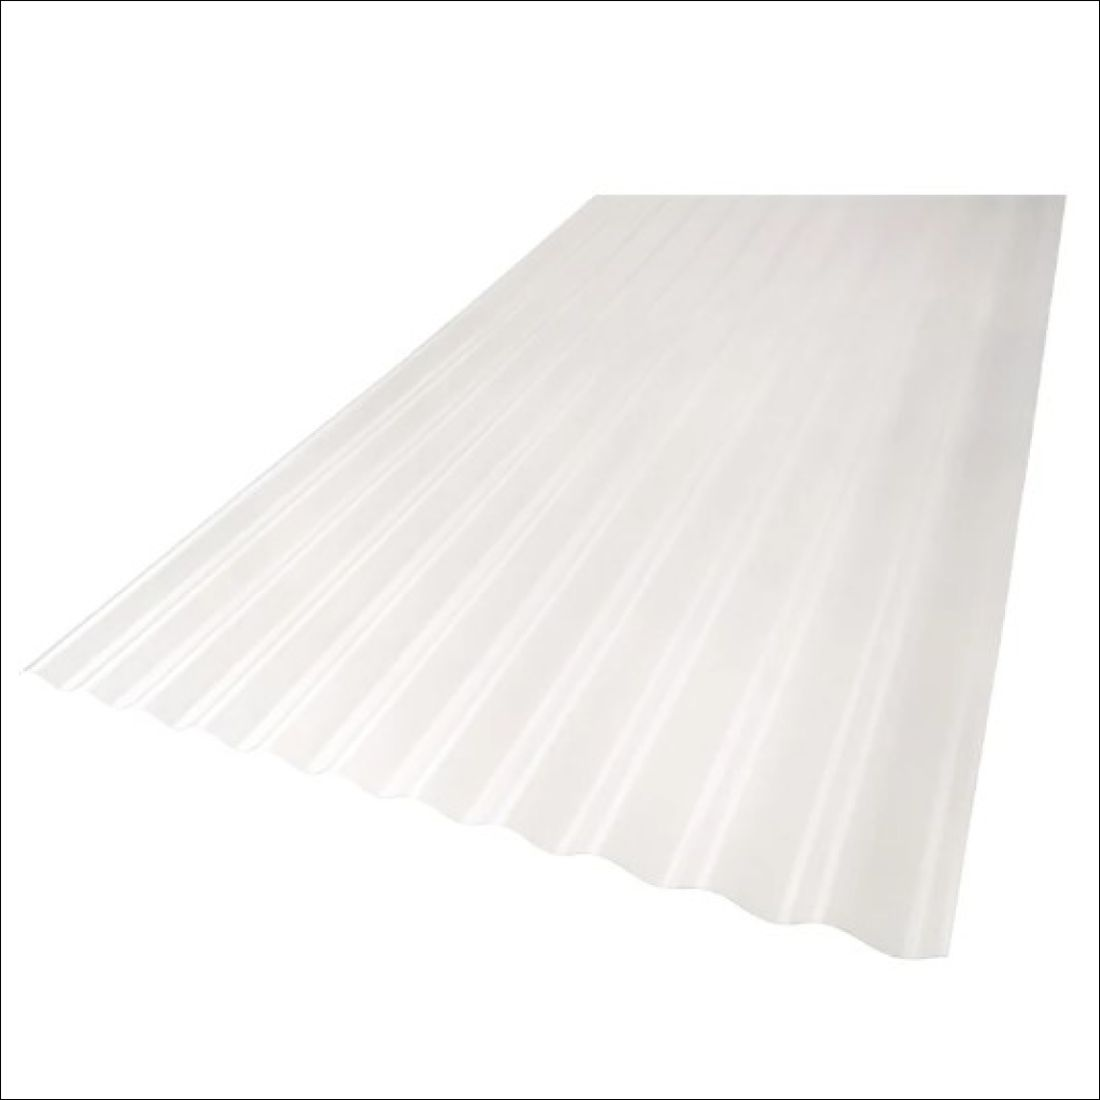 Corrugated Clear 4800 x 860mm